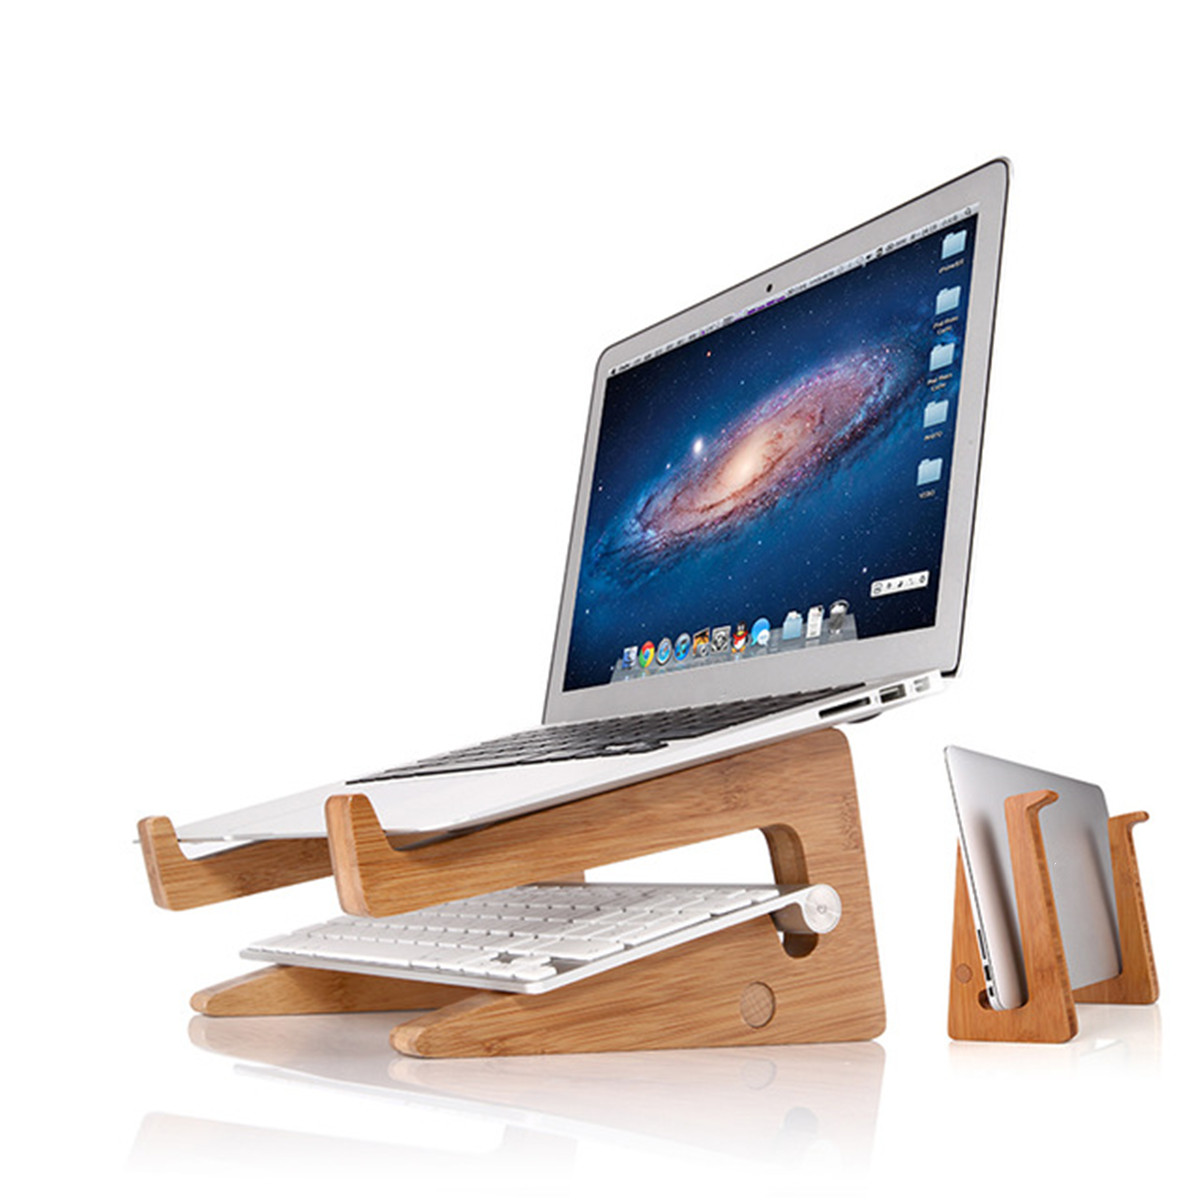 Detachable Laptop Desk Laptop Stand Wooden Holder Mount For Macbook Tablet PC Notebook Portable Lapdesks with Cooling Function image